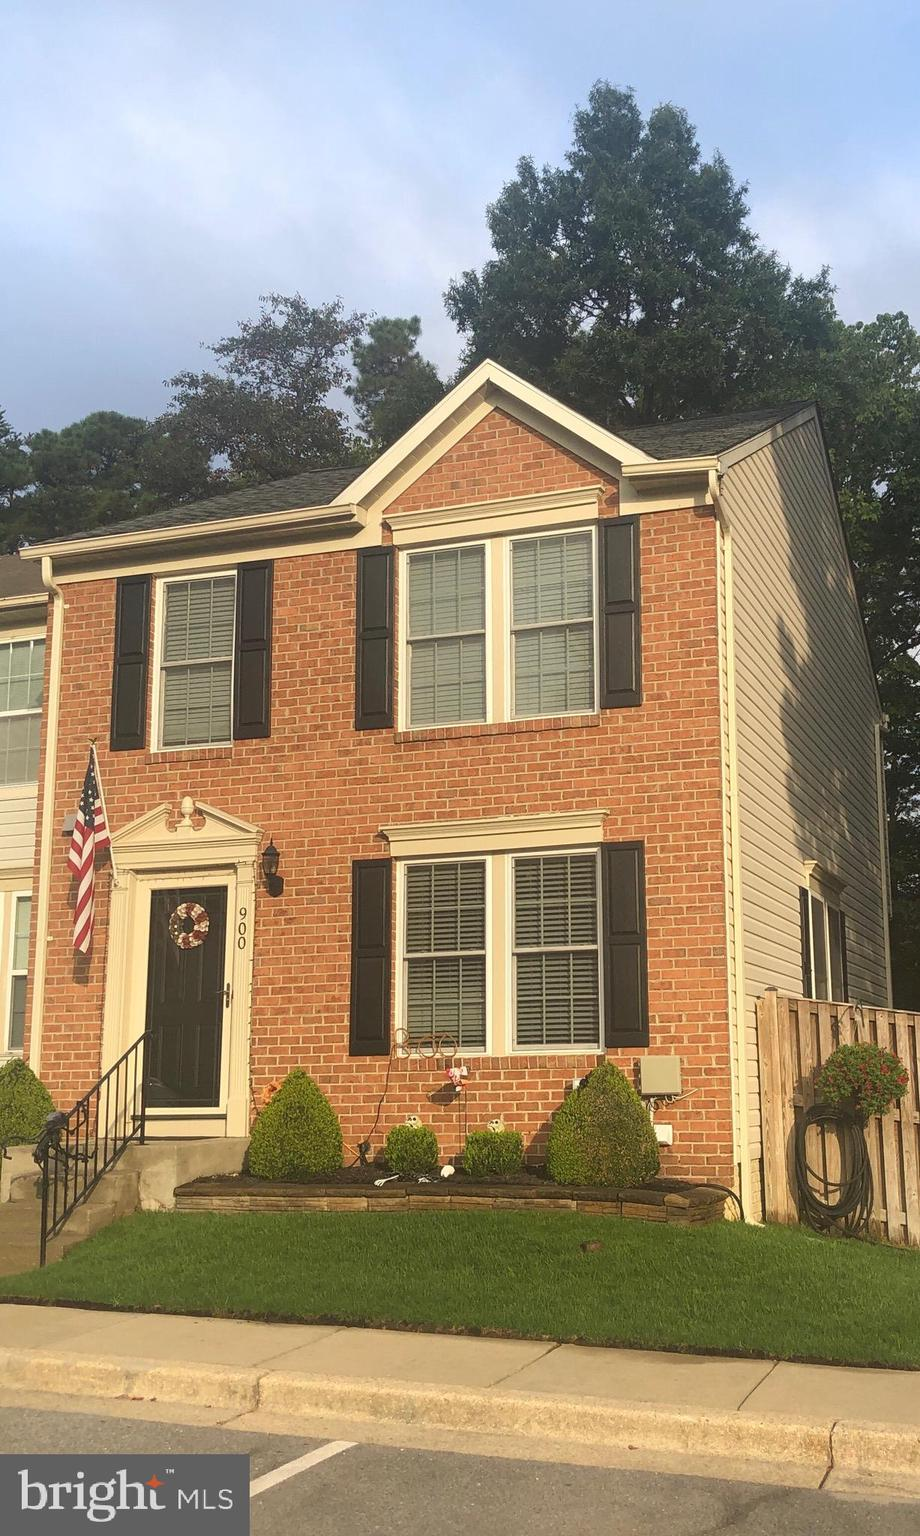 900 CHESTNUT WOOD COURT, CHESTNUT HILL COVE, MD 21226